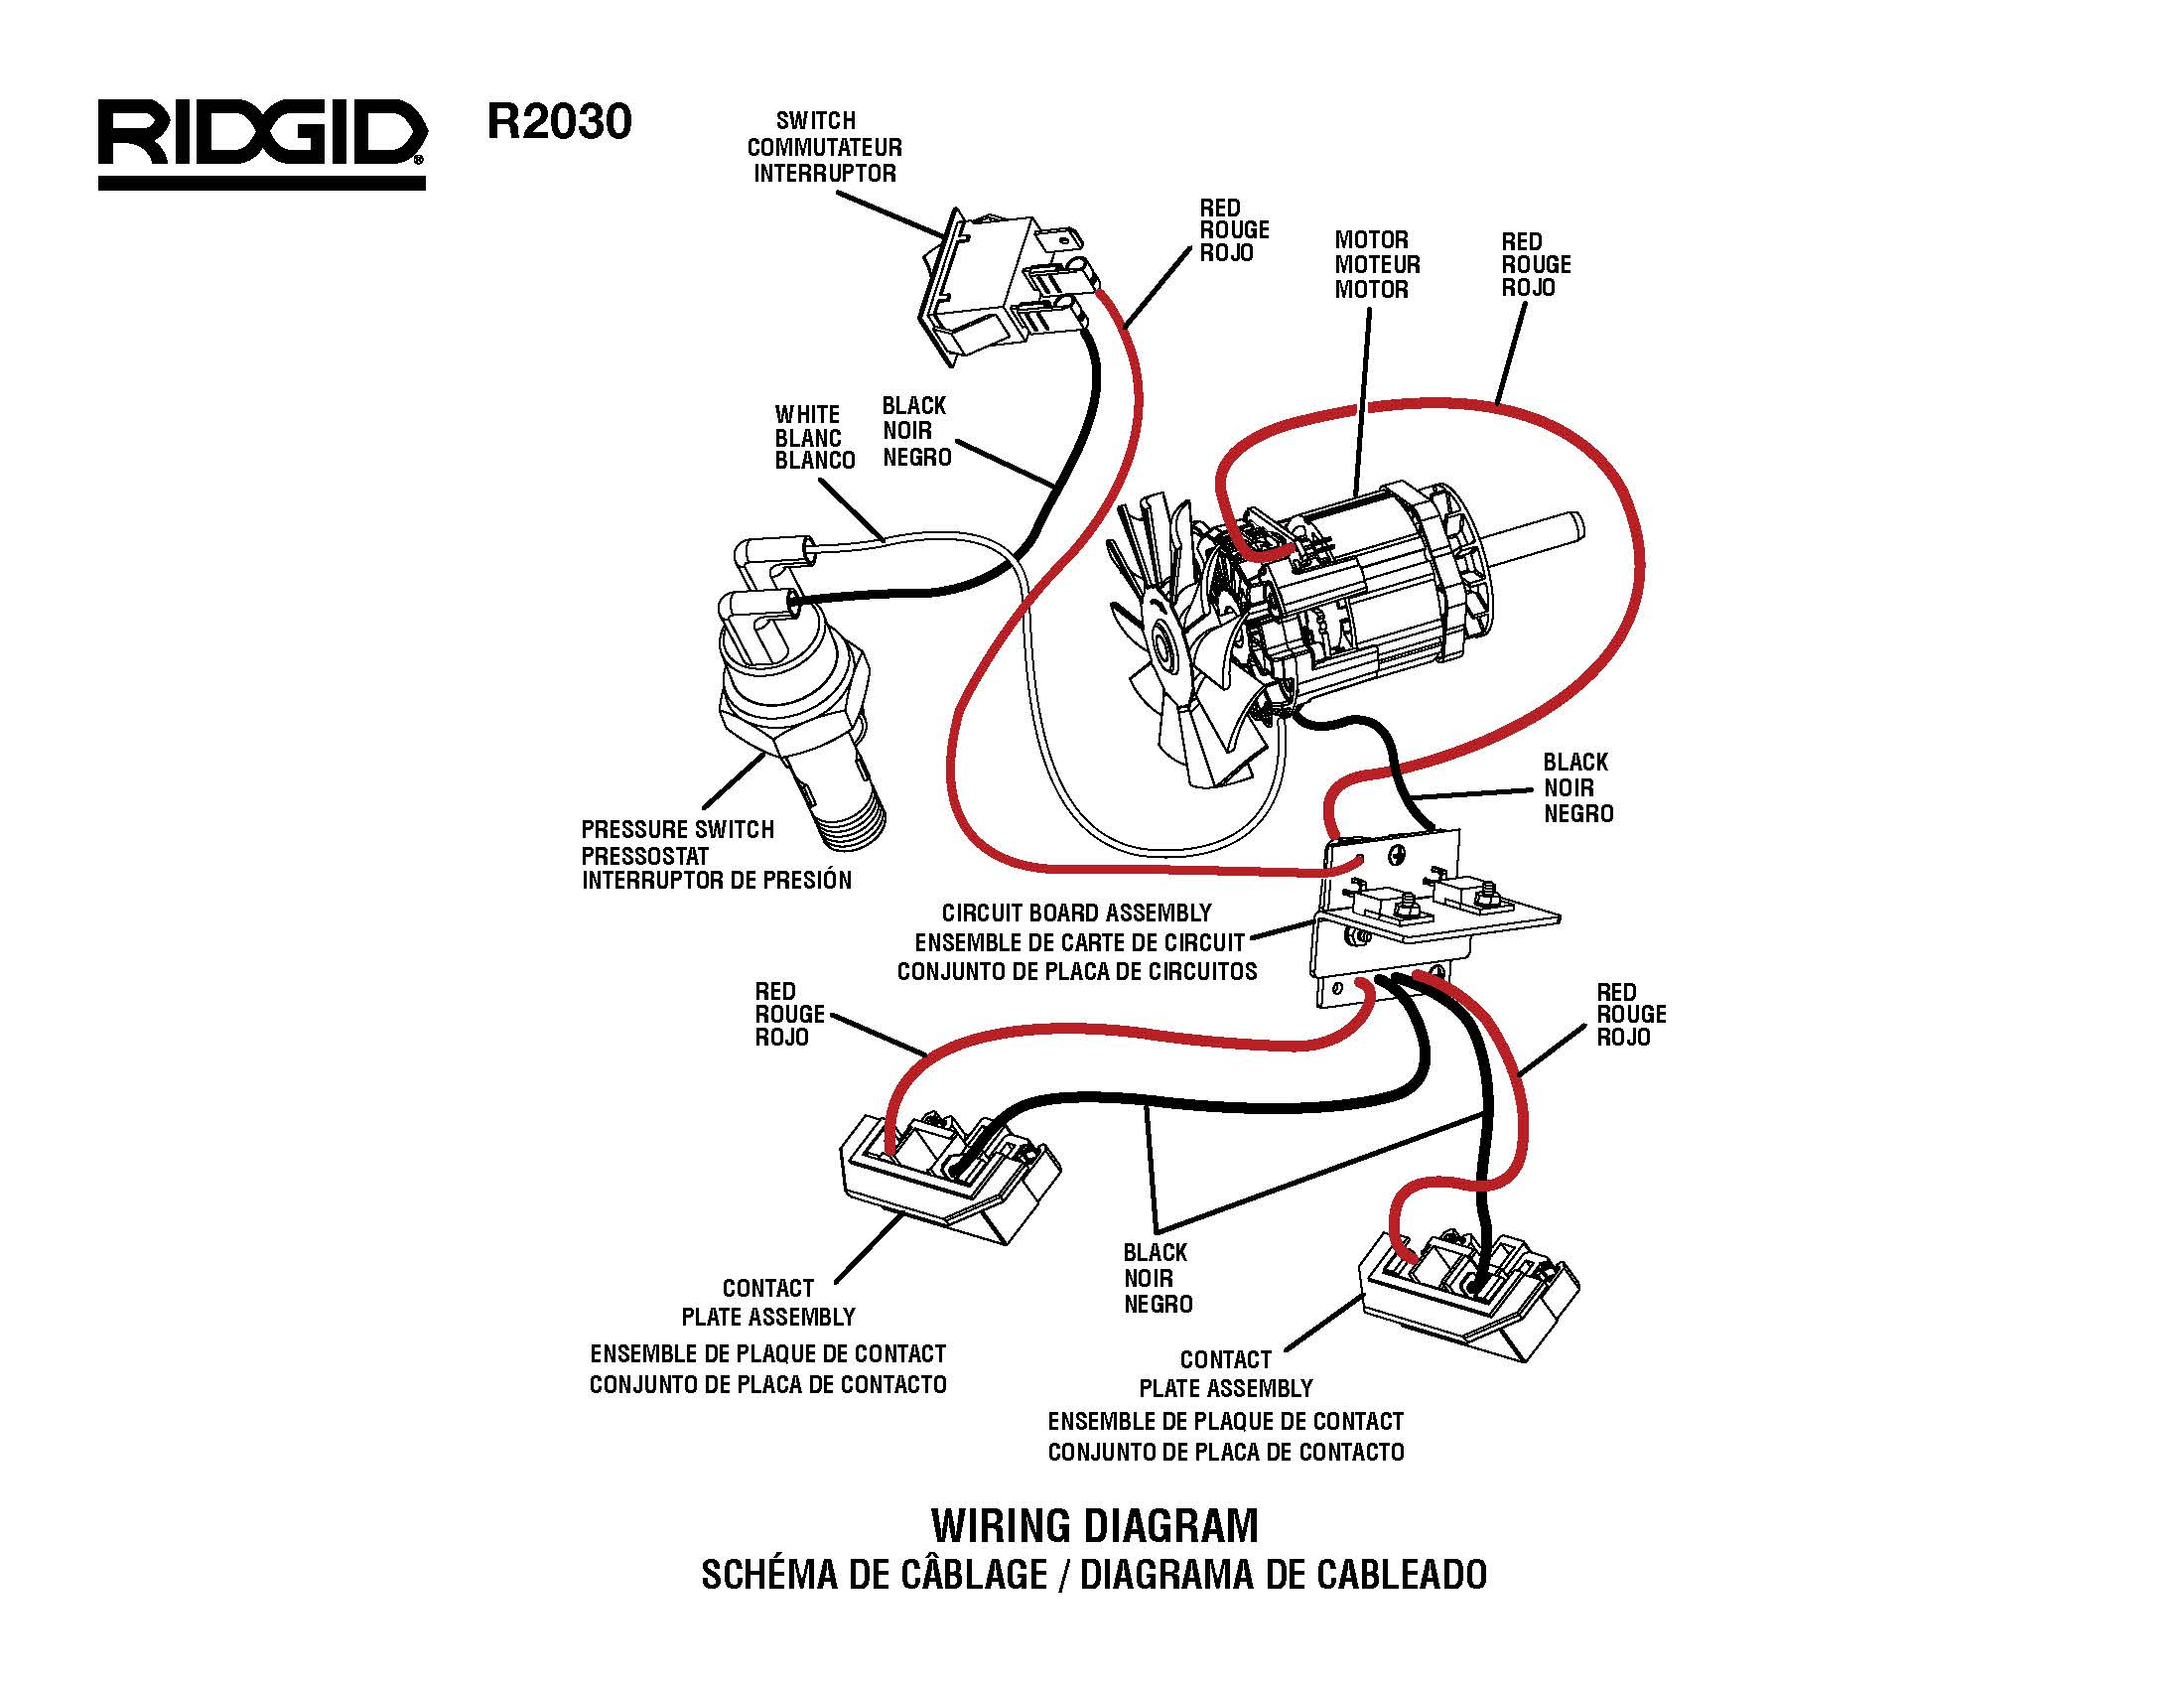 Ridgid R0230 Wiring Diagram Master Tool Repair Vintage Air Diagram Rigid Air  Compressor Wiring Diagram